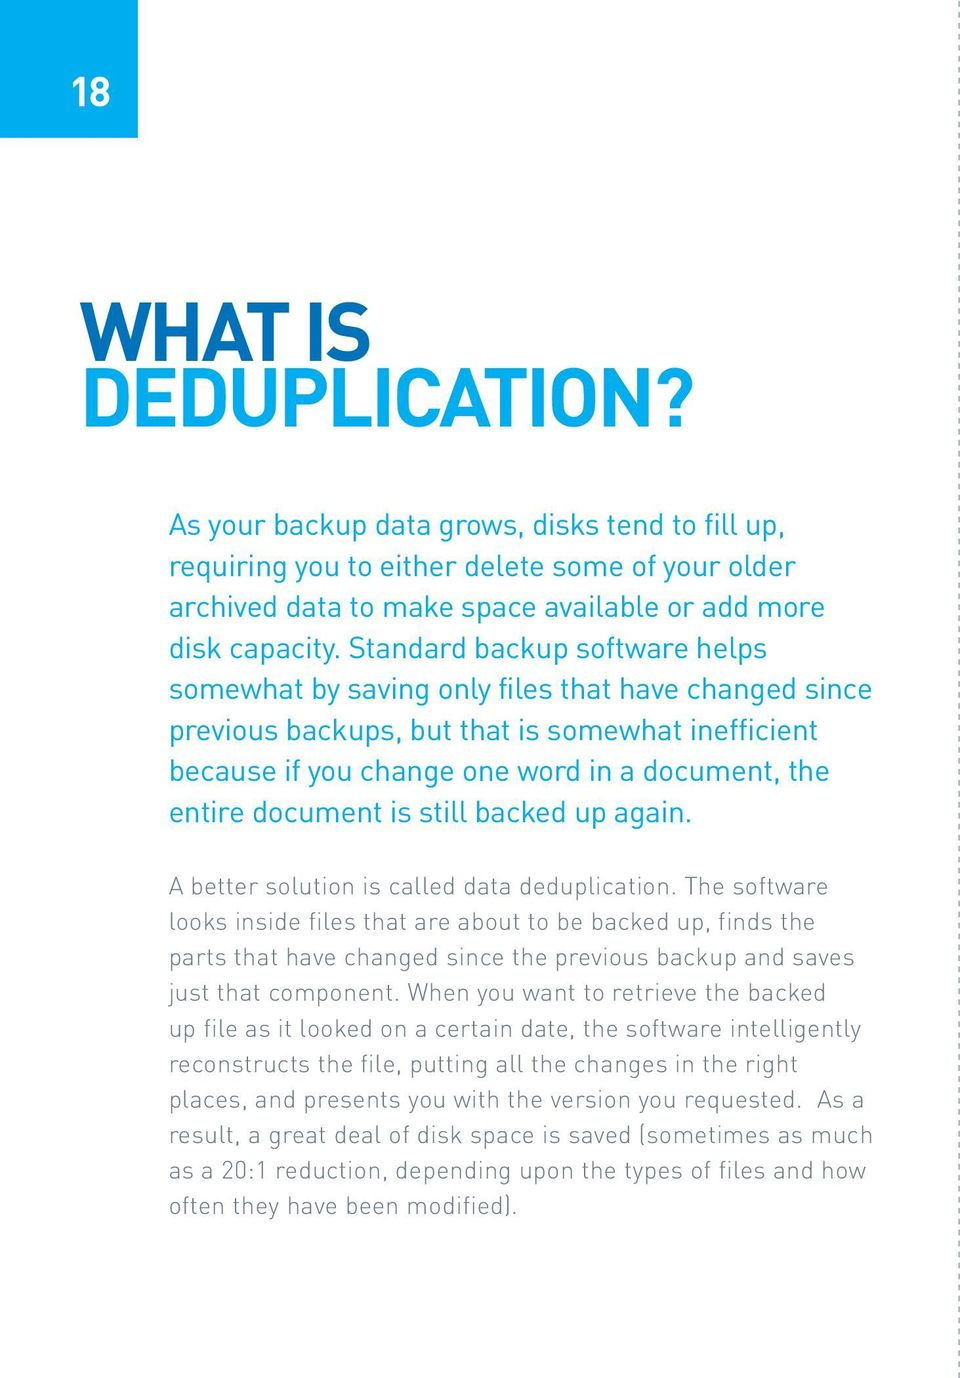 document is still backed up again. A better solution is called data deduplication.